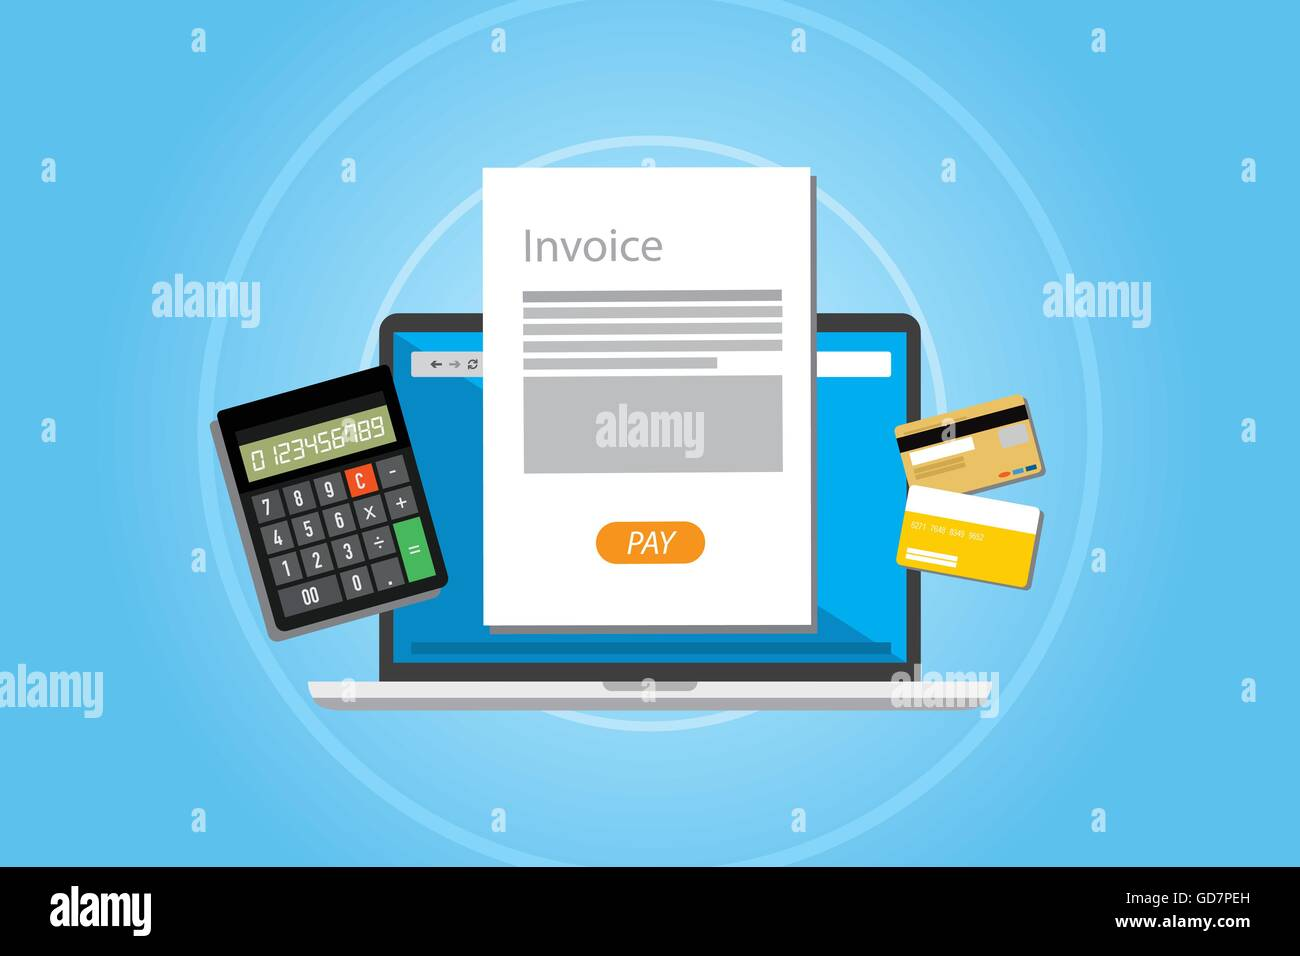 invoice invoicing online service pay stock vector art illustration